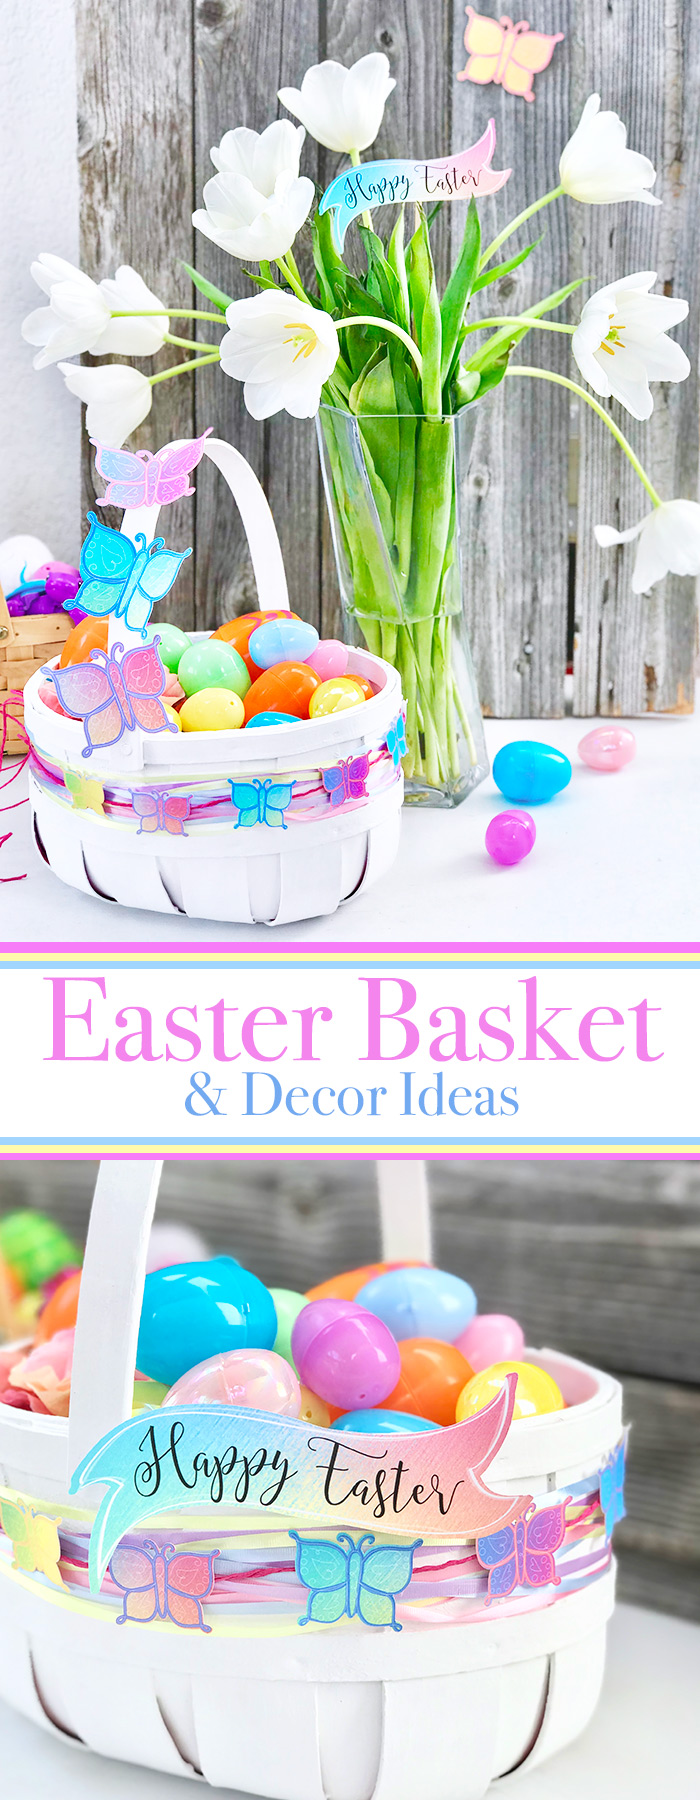 Best Diy Easter Basket And Decor Ideas The Country Chic Cottage This Month